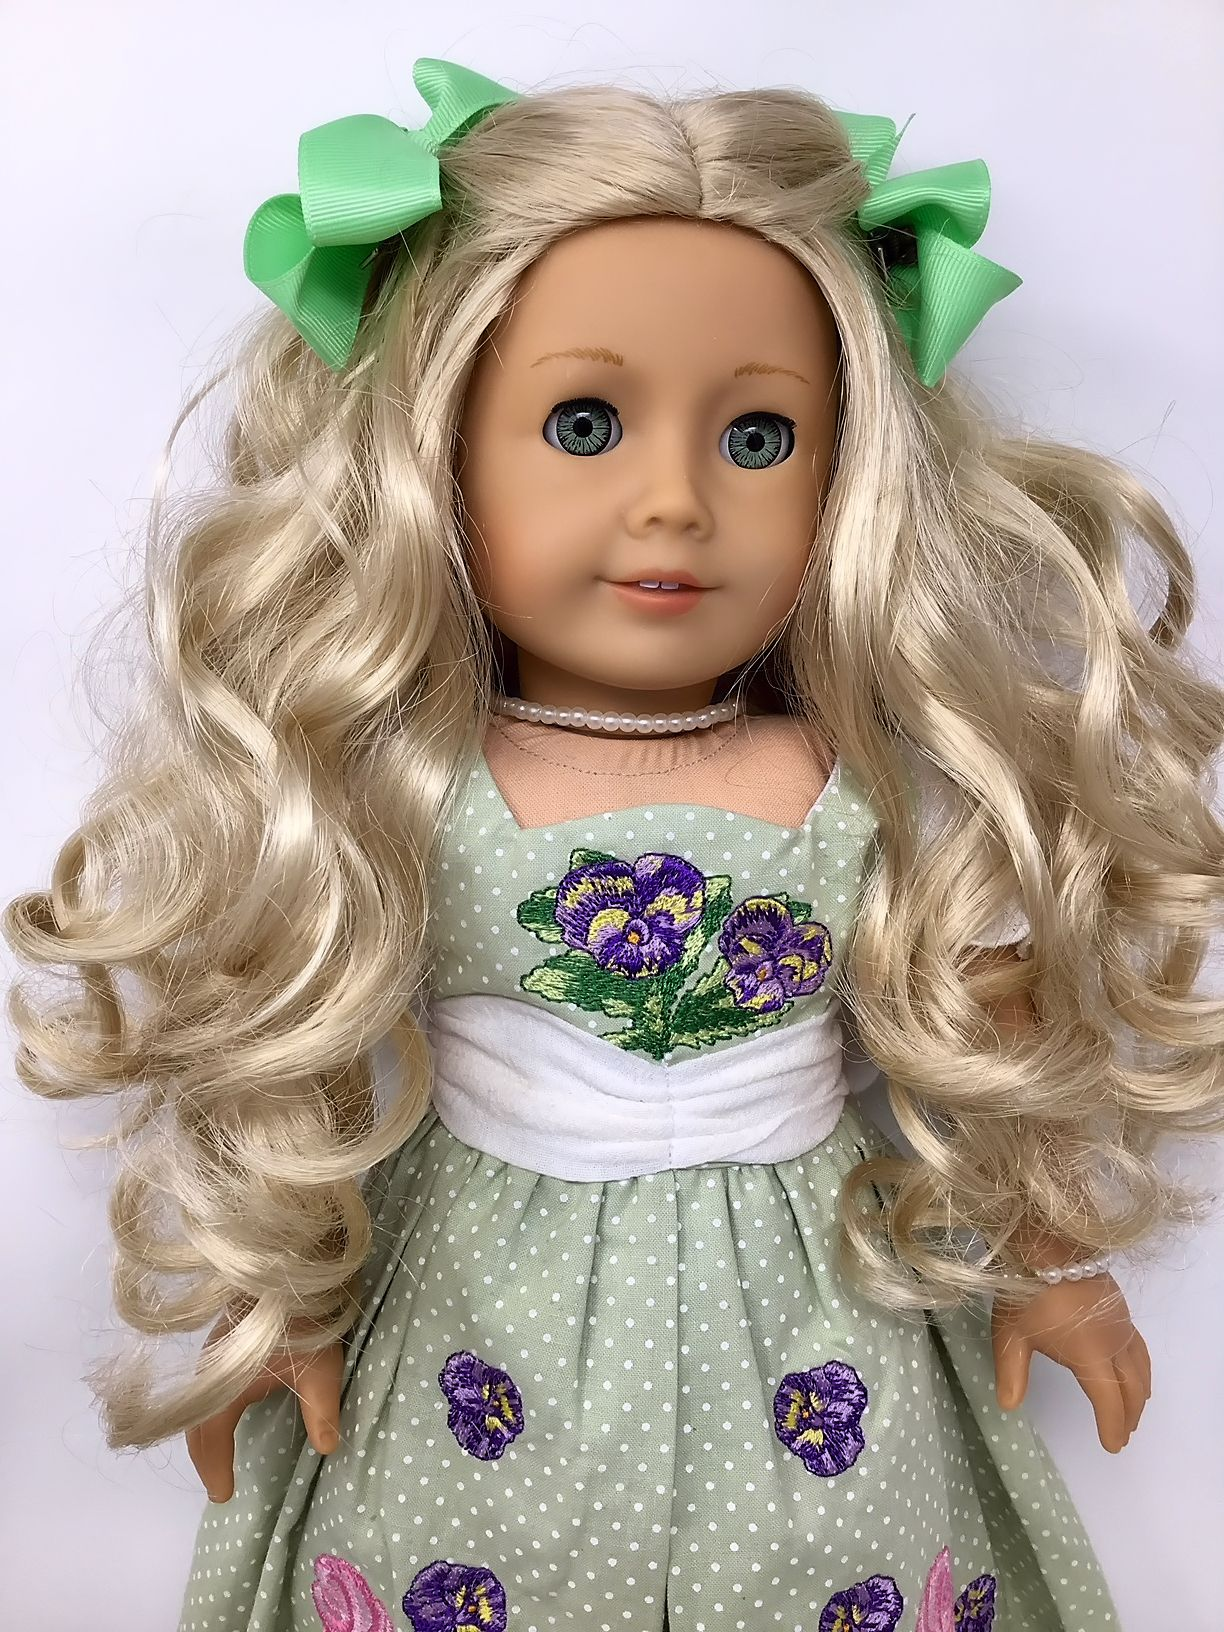 American girl doll caroline with long curly blonde hair